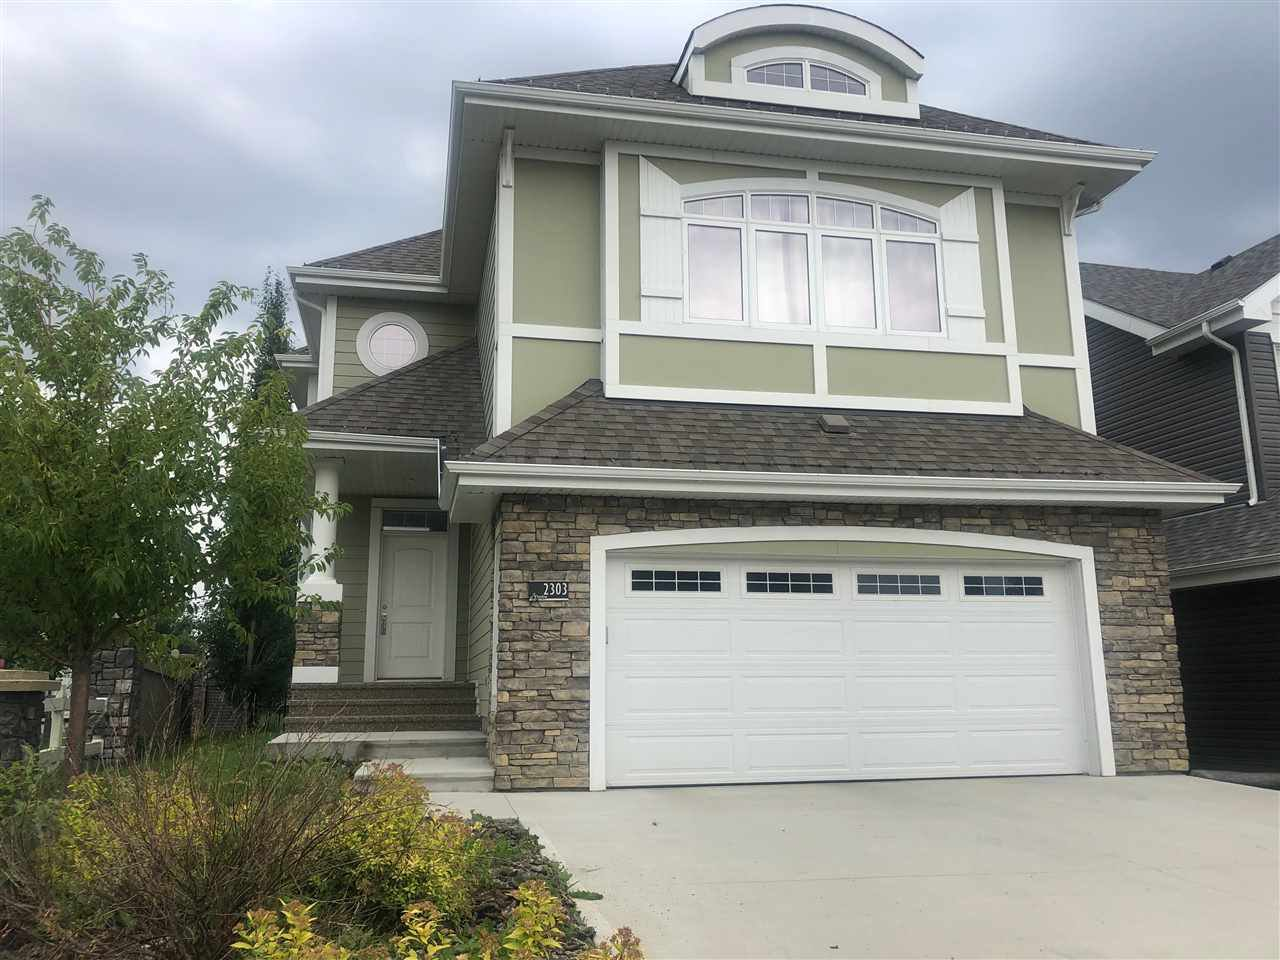 Main Photo: 2303 SPARROW Crescent in Edmonton: Zone 59 House for sale : MLS®# E4170071